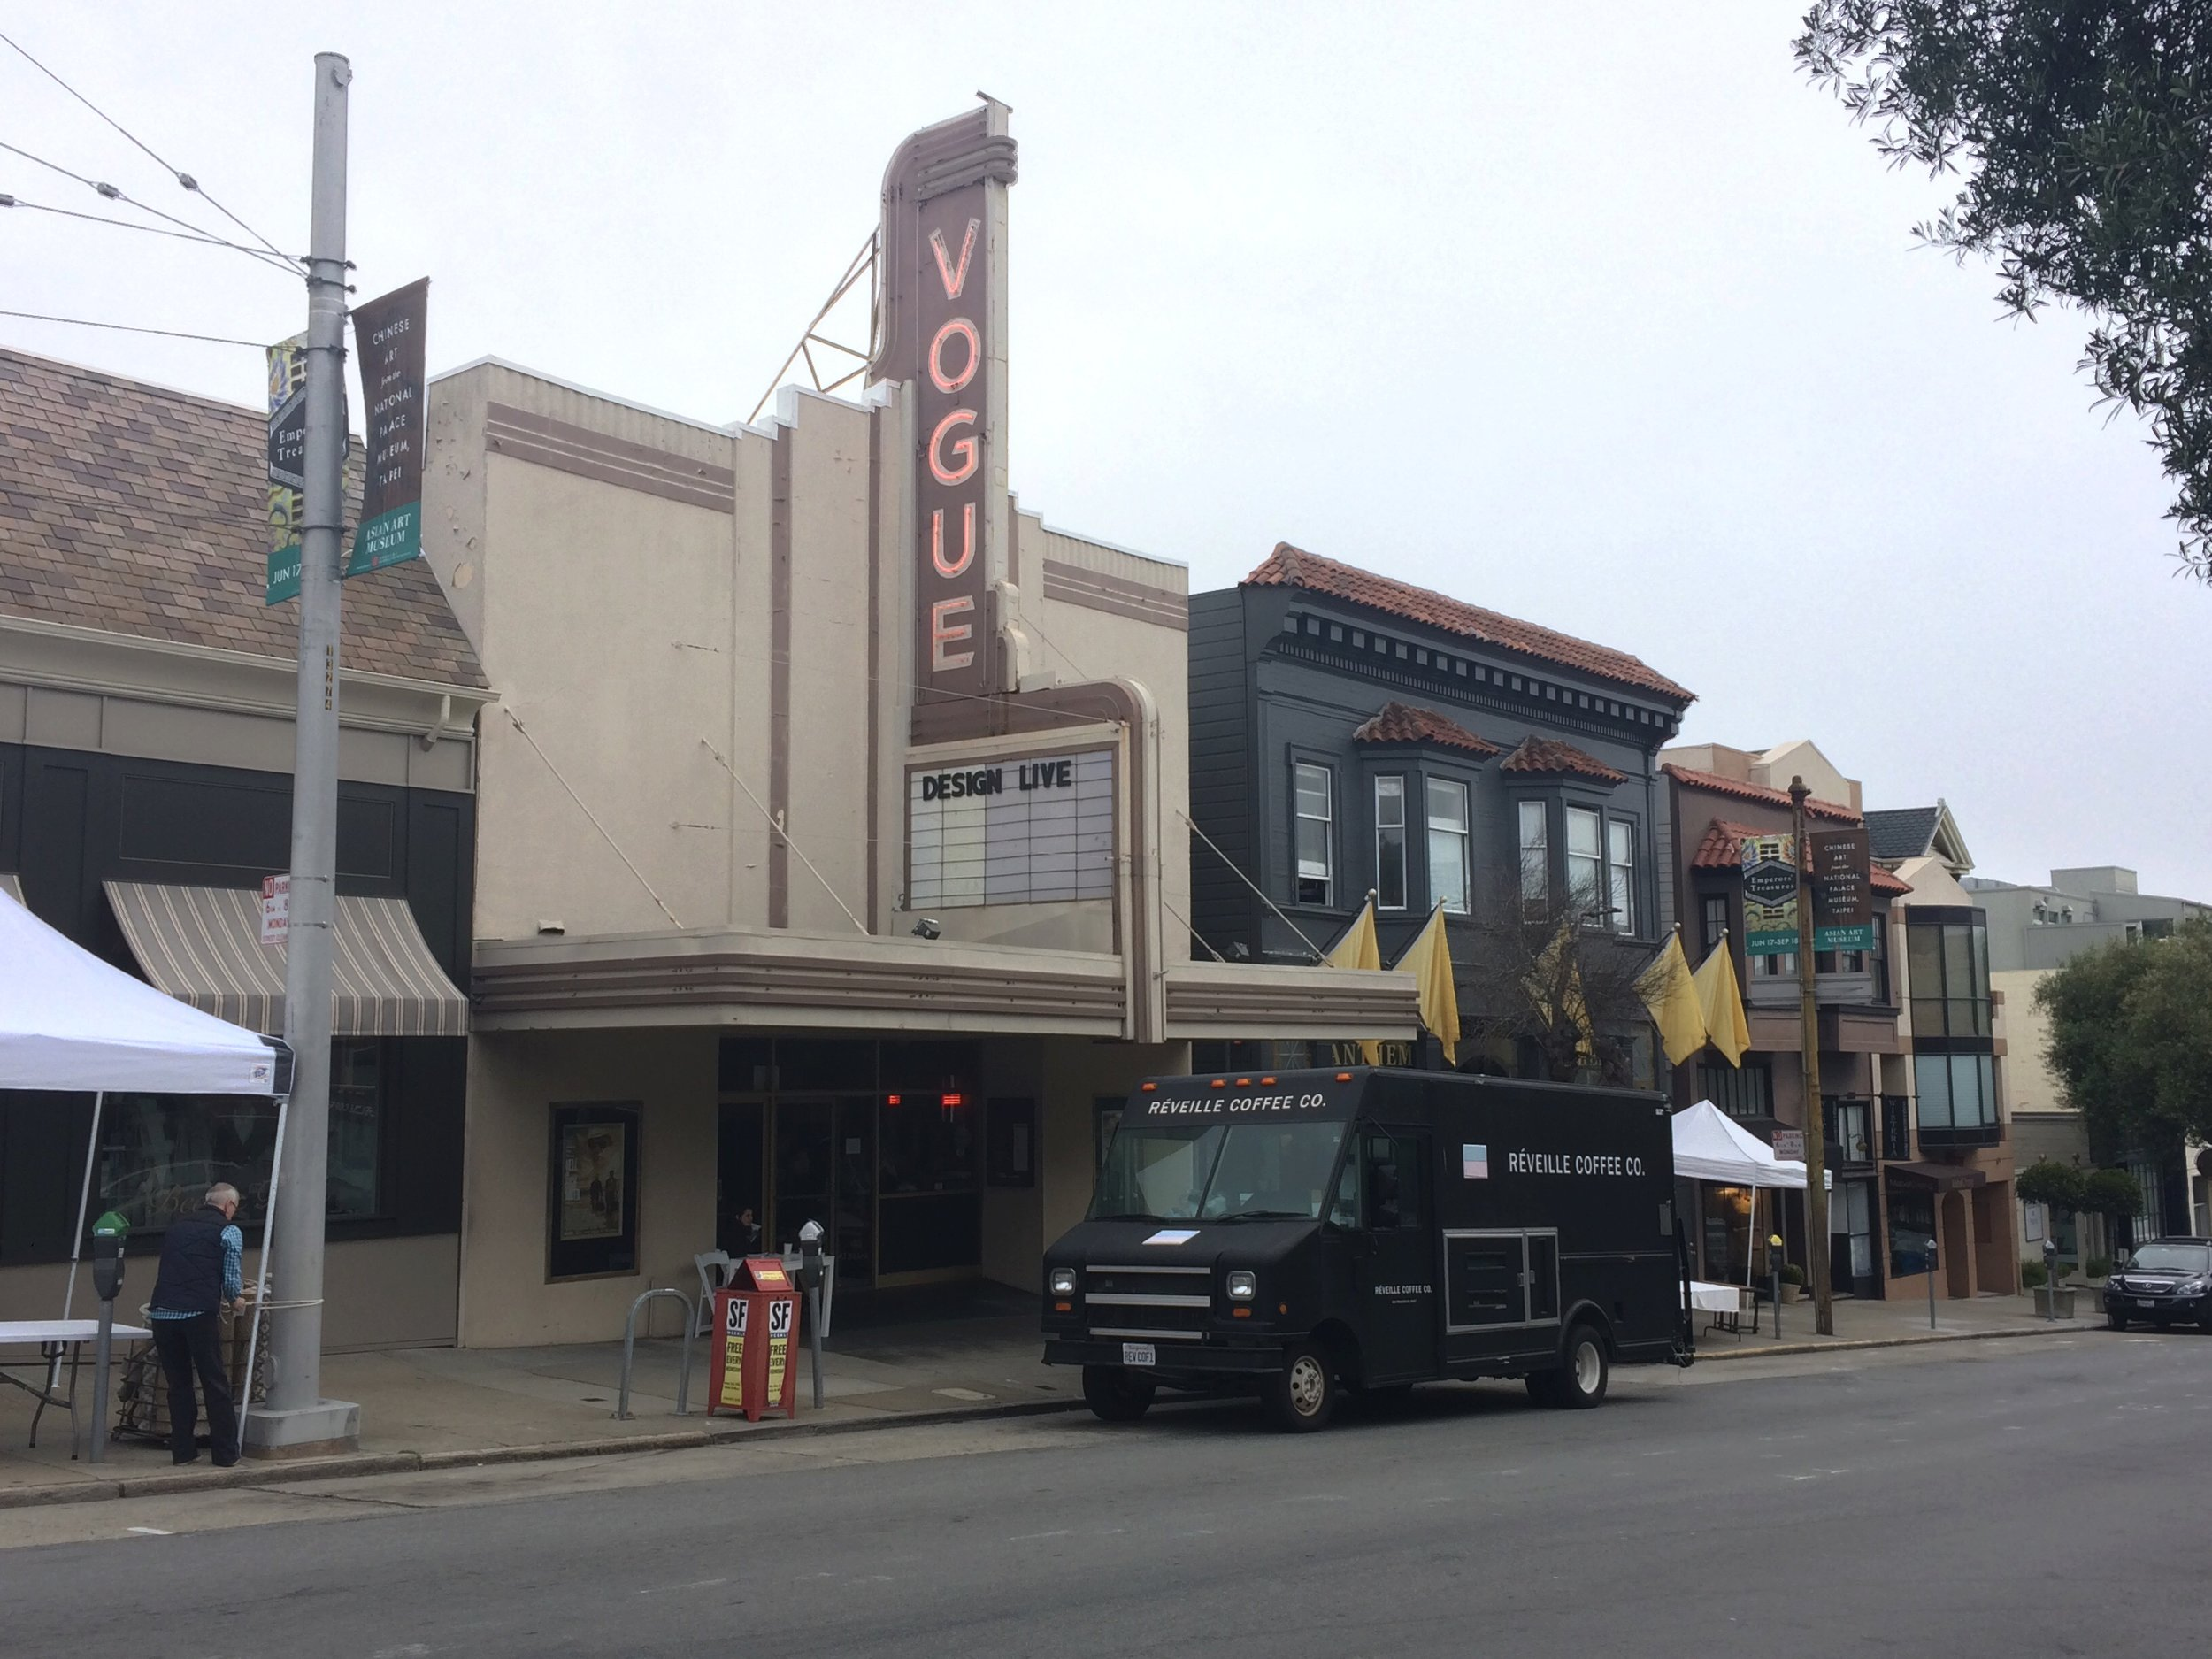 A look at designLIVE's venue, Vogue Theatre on Sacramento Street, with morning coffee provided by Réveille Coffee Co.